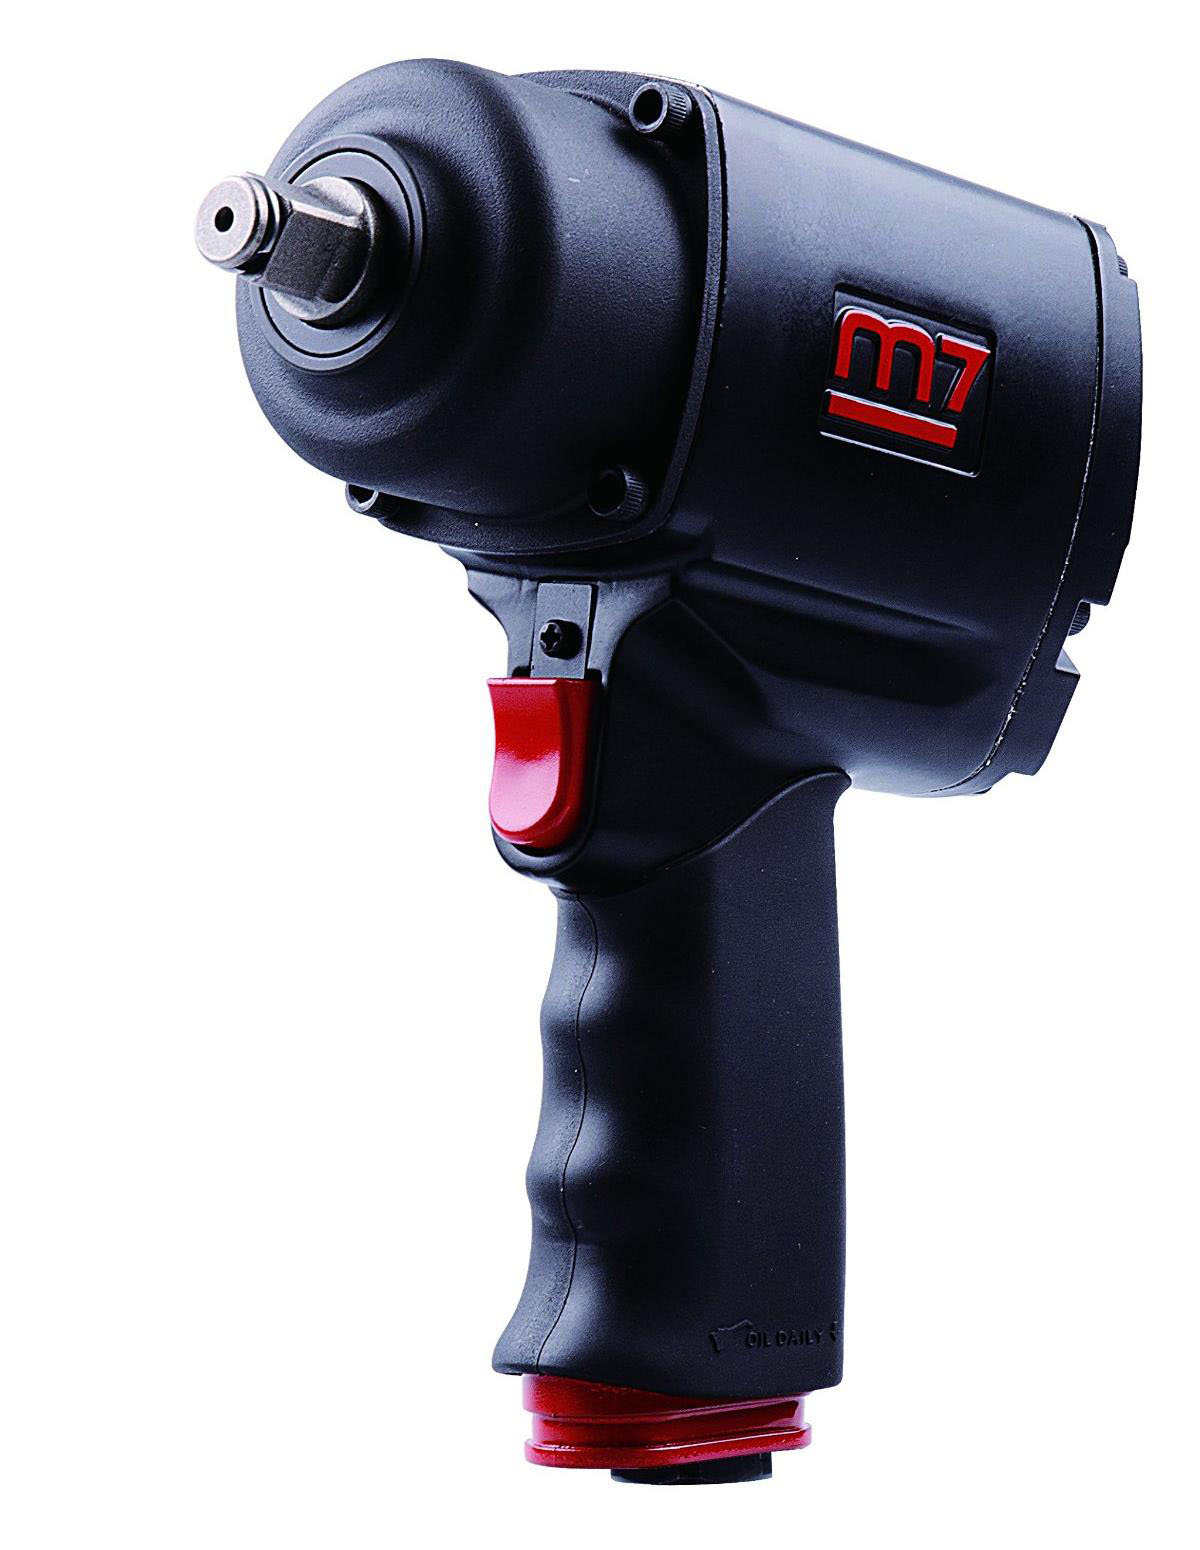 MIGHTY SEVEN NC-4236 - 1/2in Drive Air Impact Wrench; 1000 FT-LB Max Torque